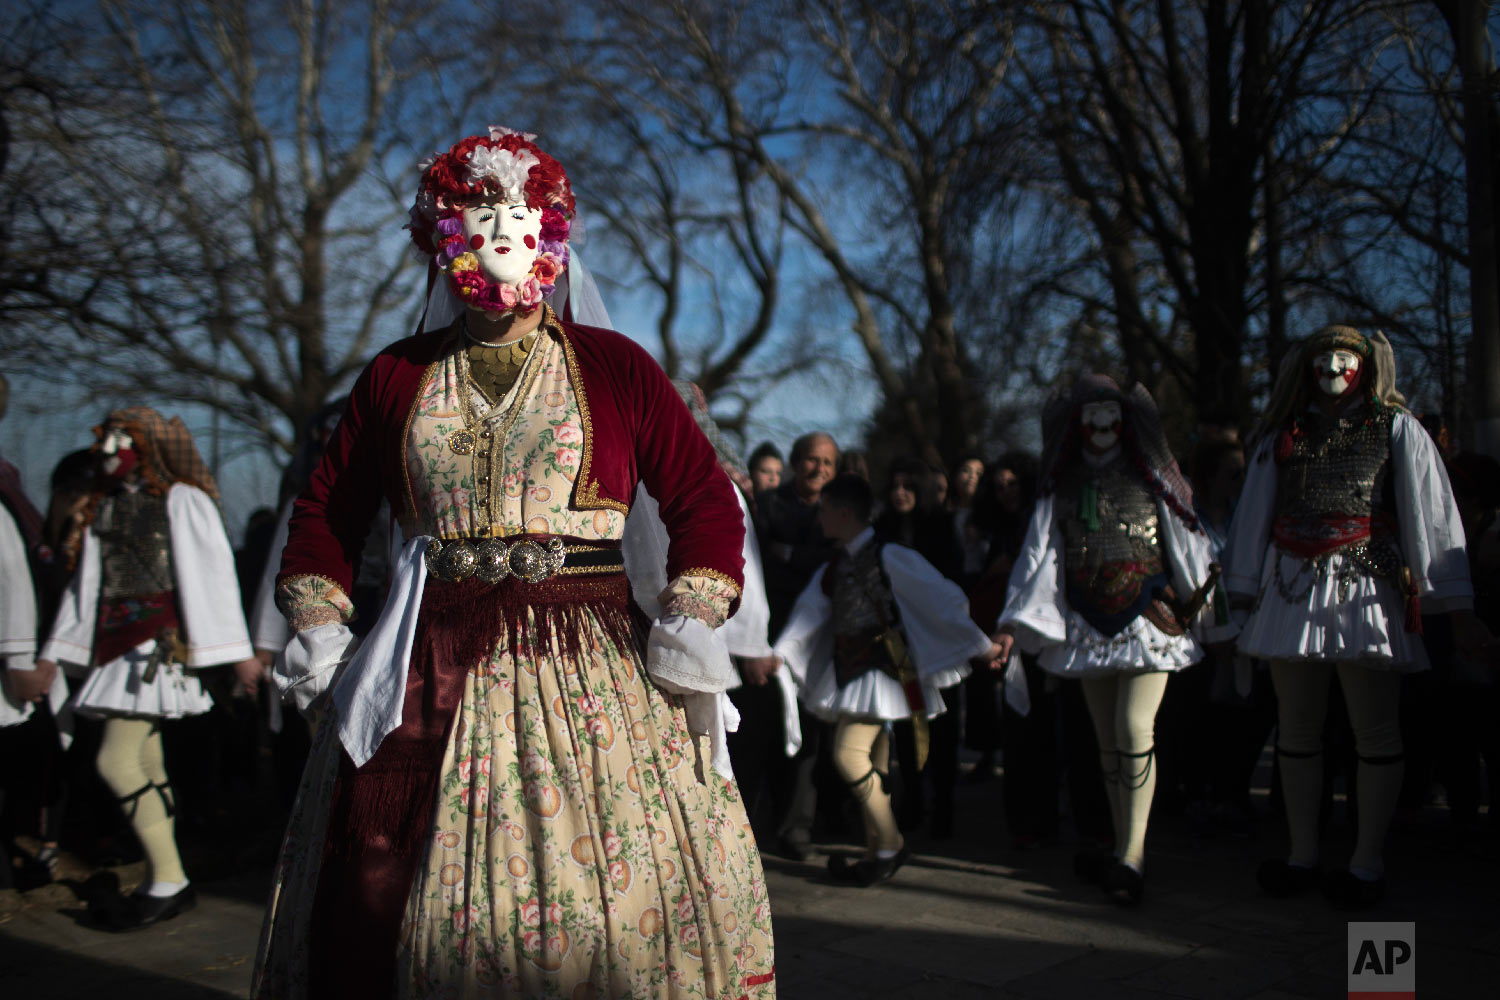 Dancers with masks and traditional costume perform in the Boules and Genitsaroi carnival parade in the town of Naousa, northern Greece on March 10, 2019. (AP Photo/Petros Giannakouris)